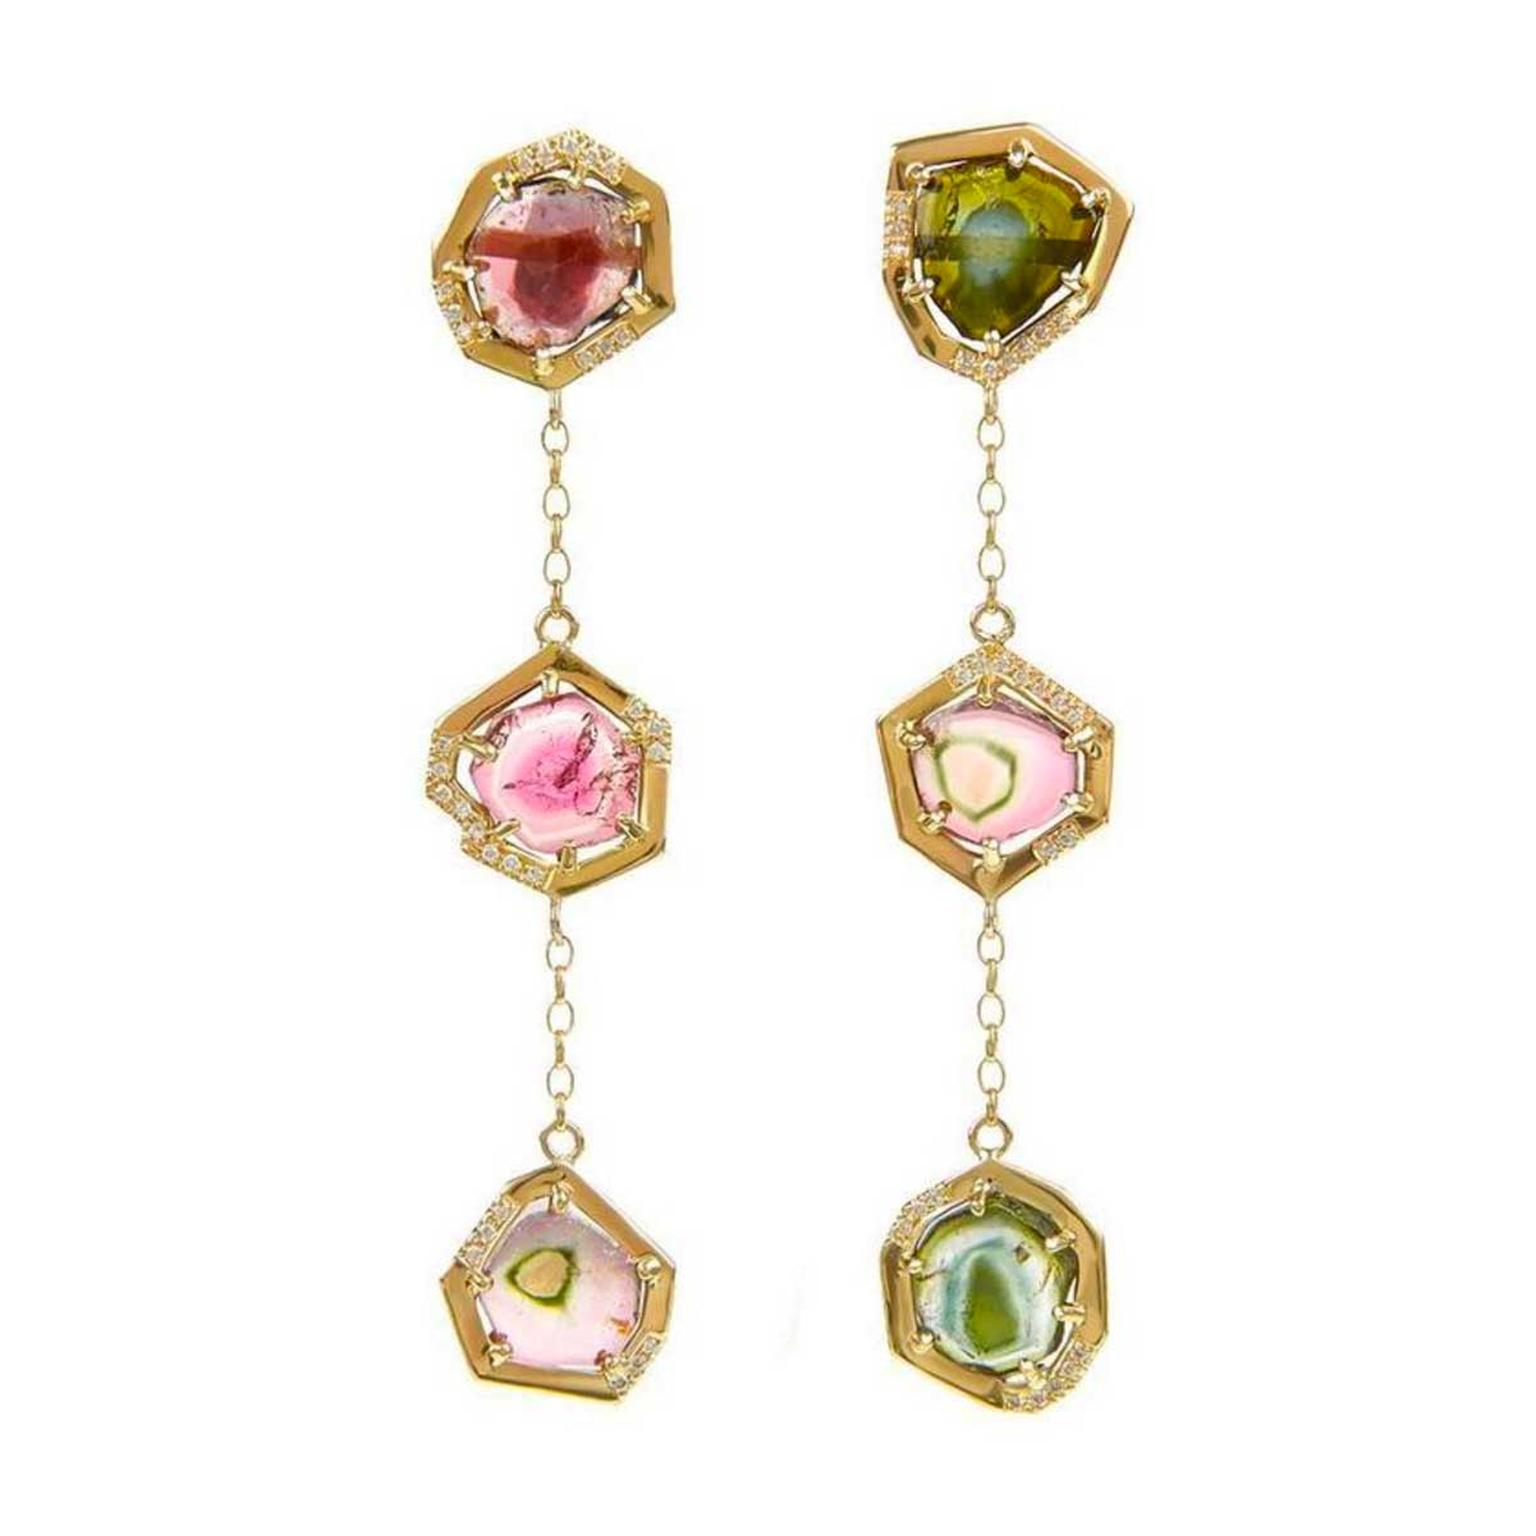 Tessa Packard Brighton Rocks watermelon tourmaline earrings